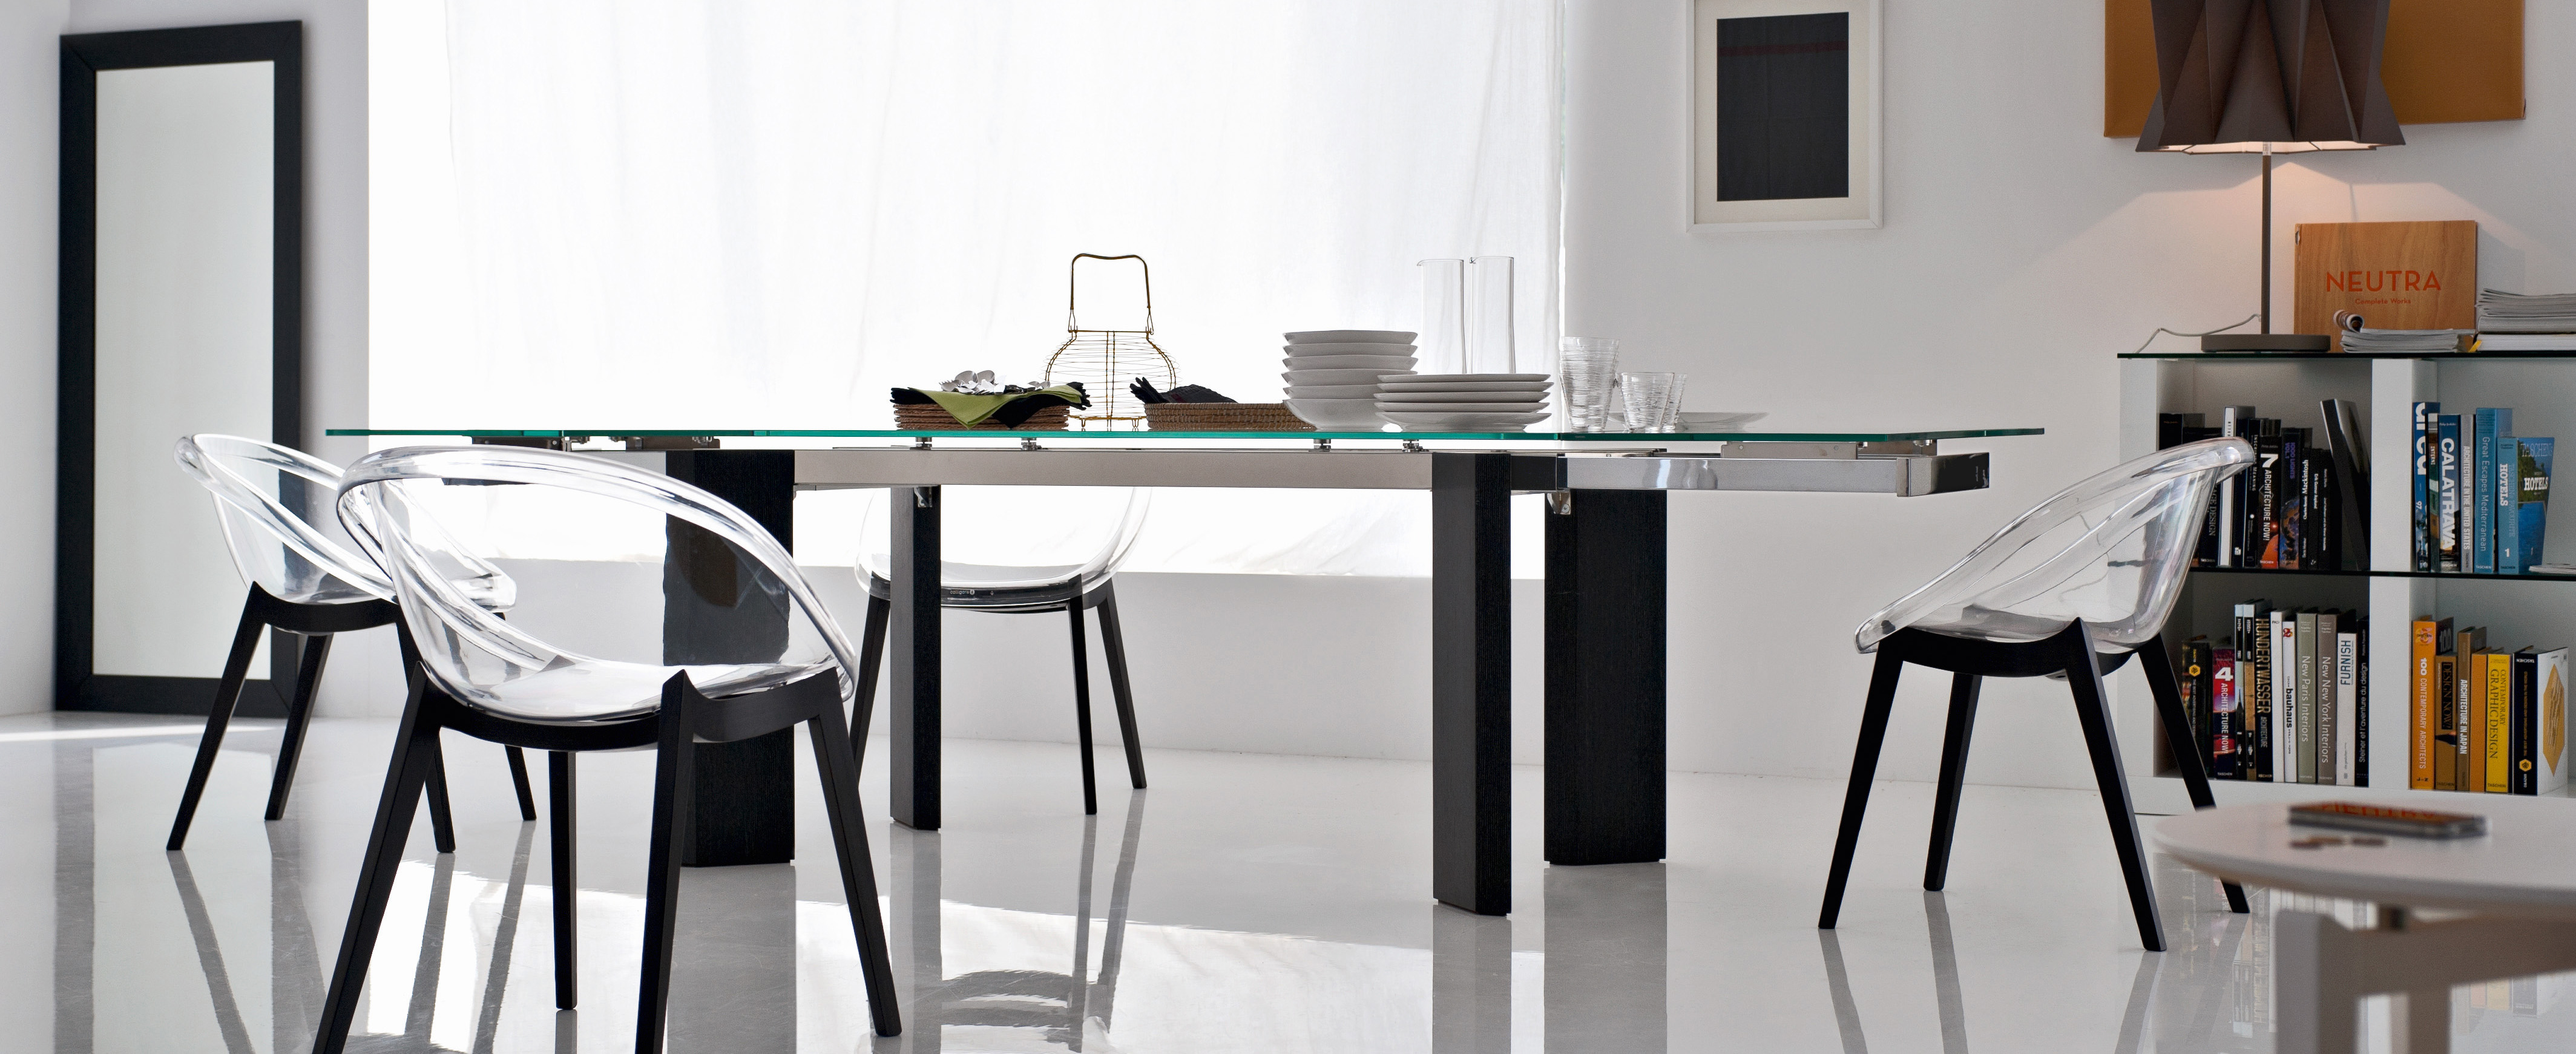 Calligaris Tower Modern Extendable Glass Dining Table  : cs4057 rlp173cs1389 1 from calligaristoronto.ca size 4256 x 1742 jpeg 1399kB